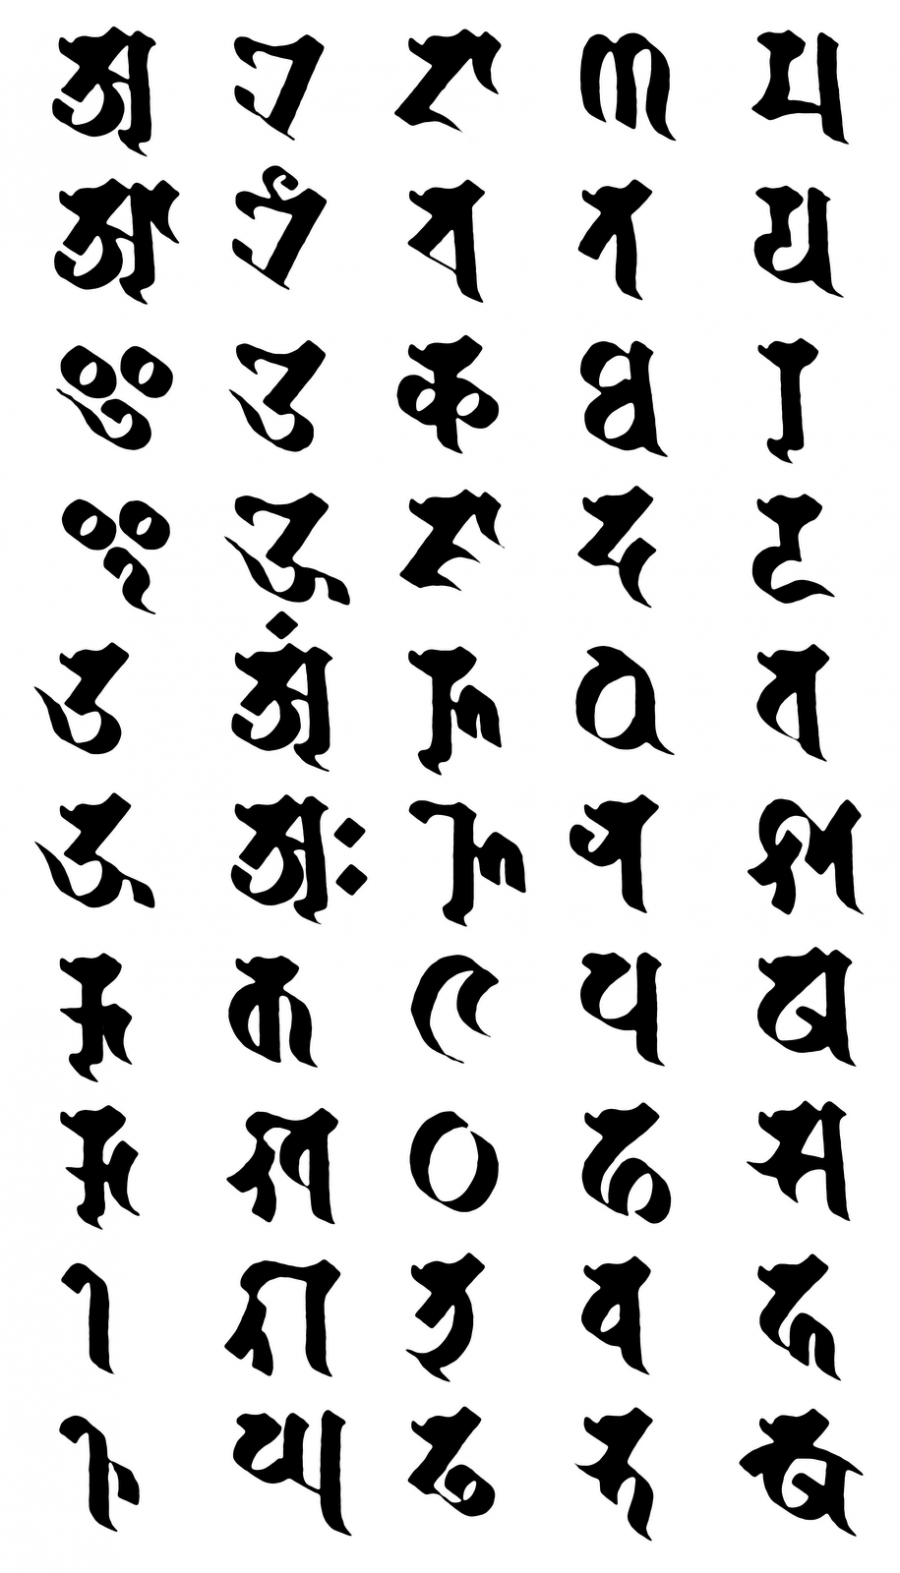 Visible Mantra Sanskrit Script Tattoo Tattoomagz